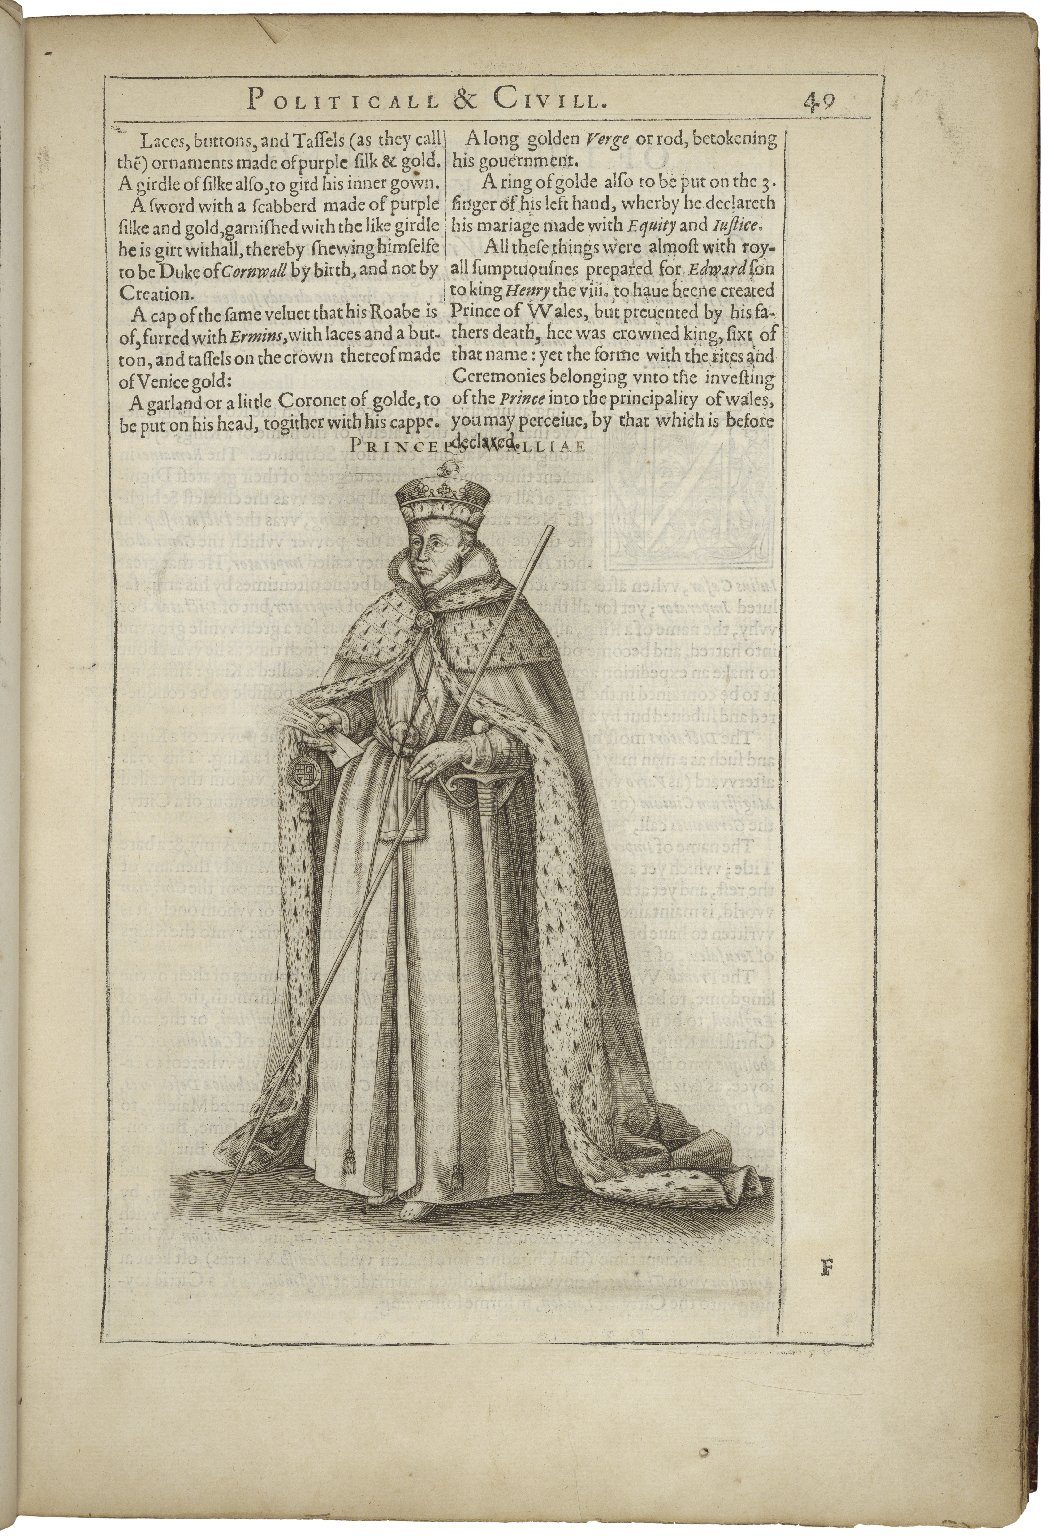 The catalogue of honor or Tresury of true nobility. peculiar and proper to the isle of Great Britaine: that is to say: a collection historicall of all the free monarches aswell kinges of England as Scotland, (nowe vnited togither) with the Princes of Wall